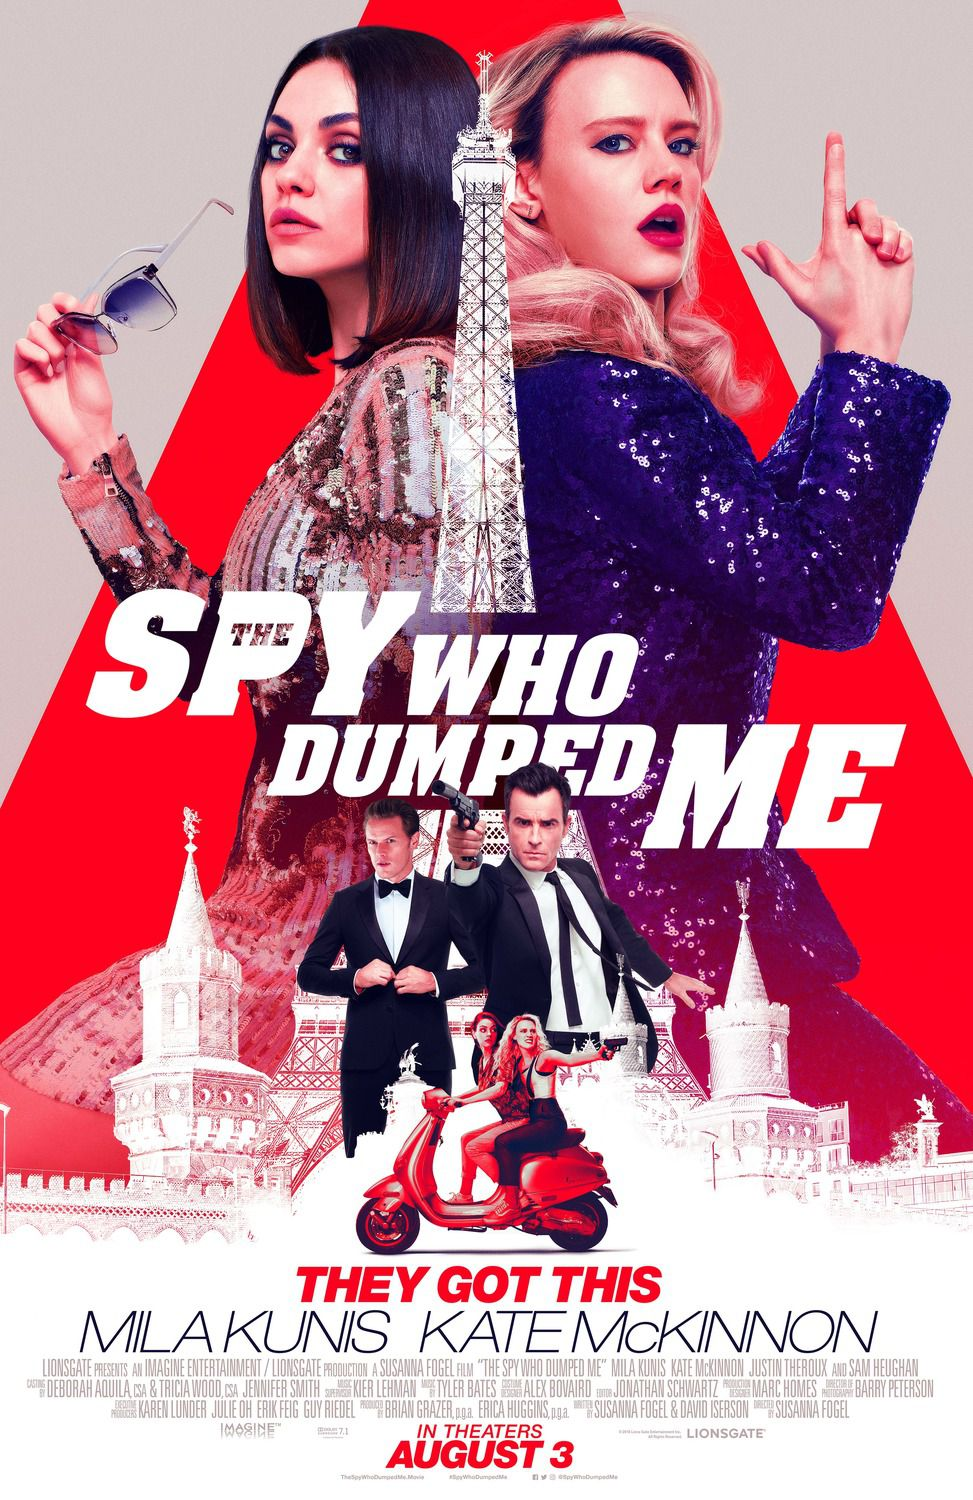 The Spy Who Dumped Me - film poster